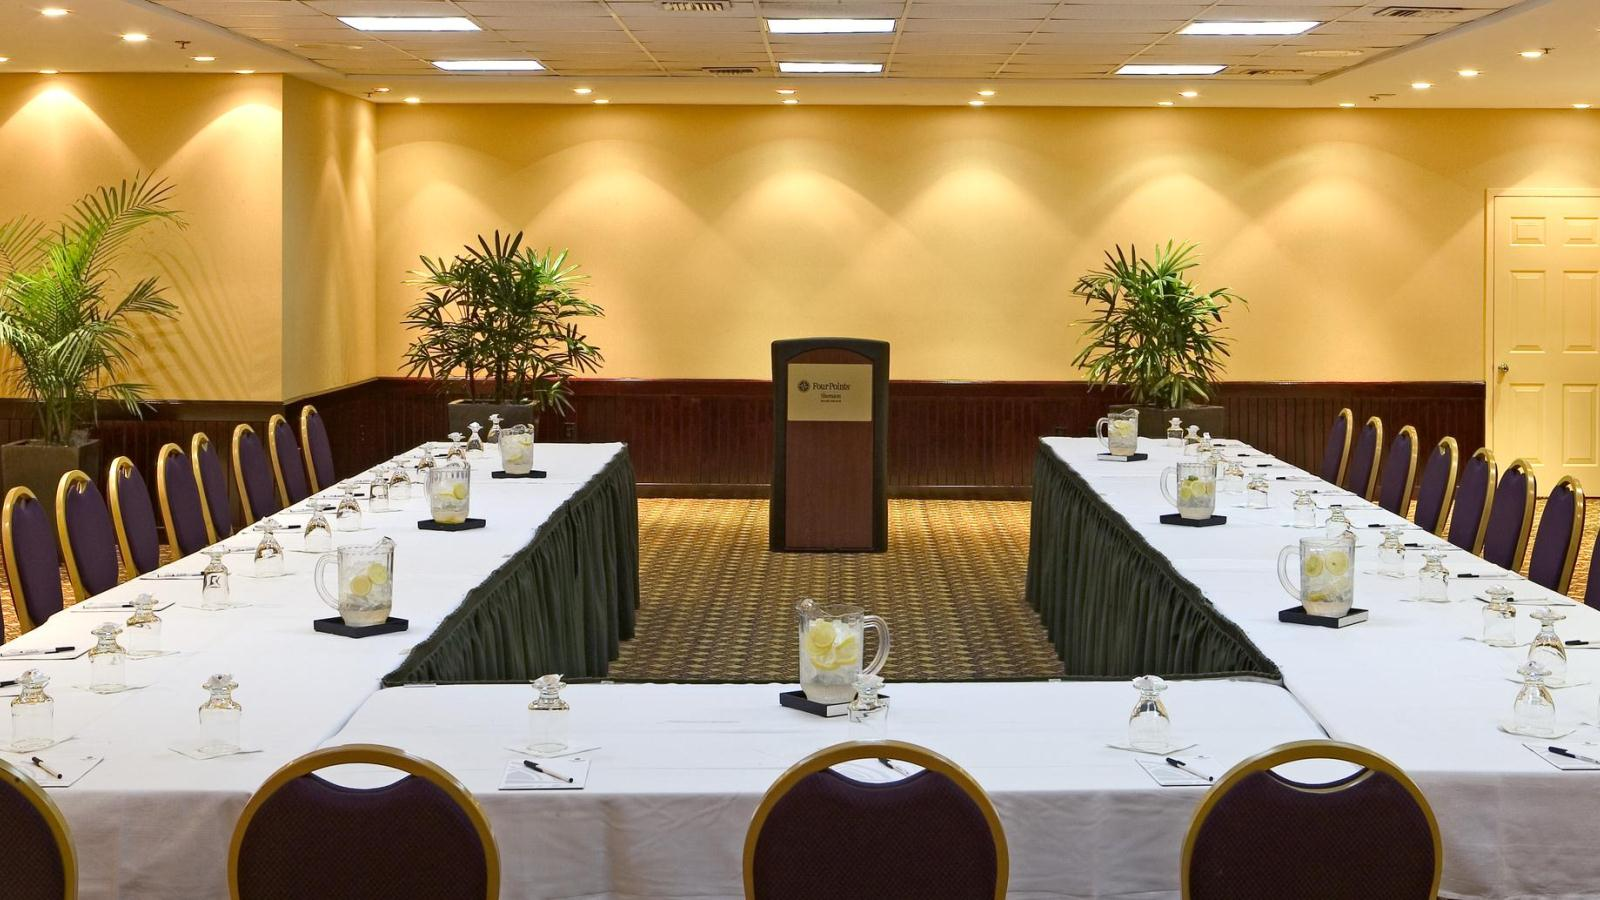 Miami Beach Meeting Rooms - Boardroom Setup